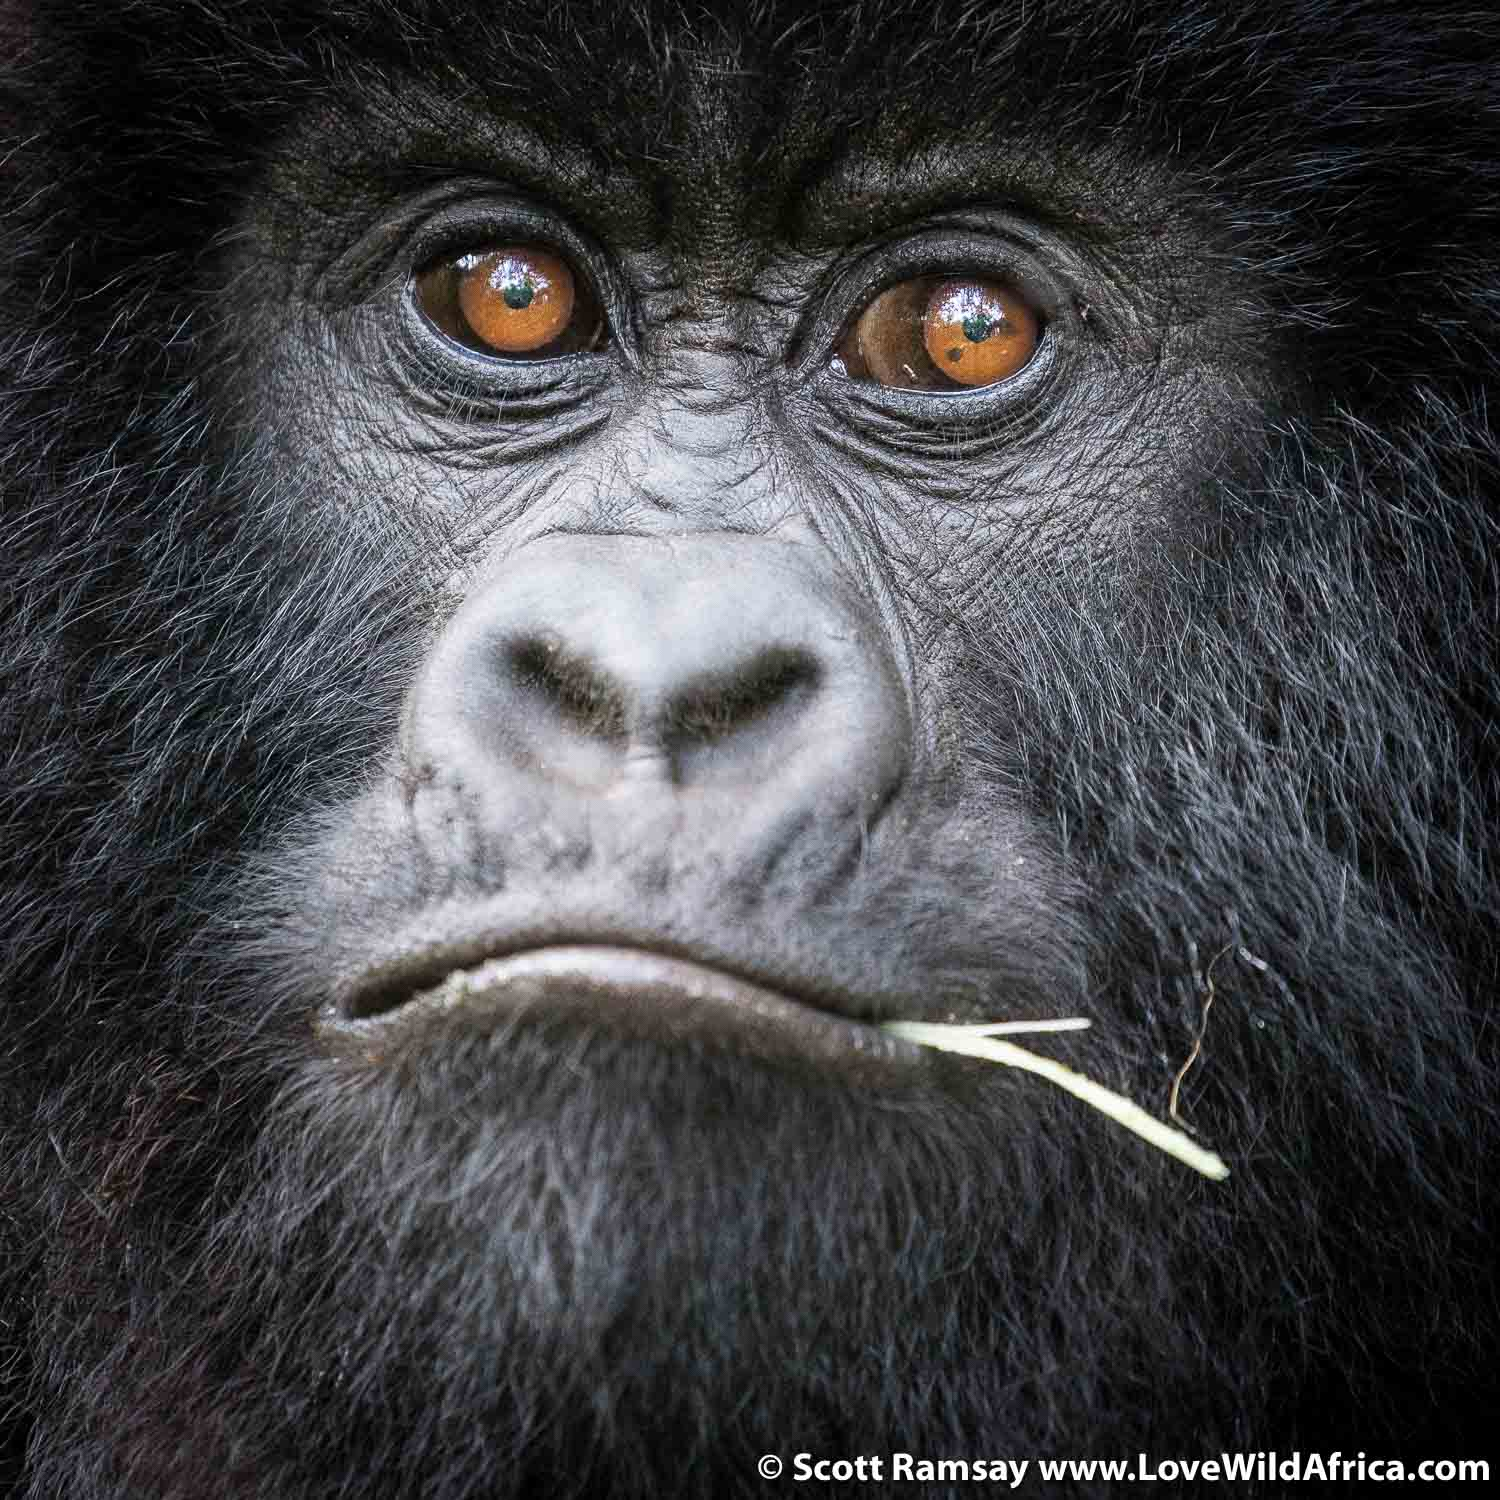 A young gorilla. As they get older, their eyes tend to darken.